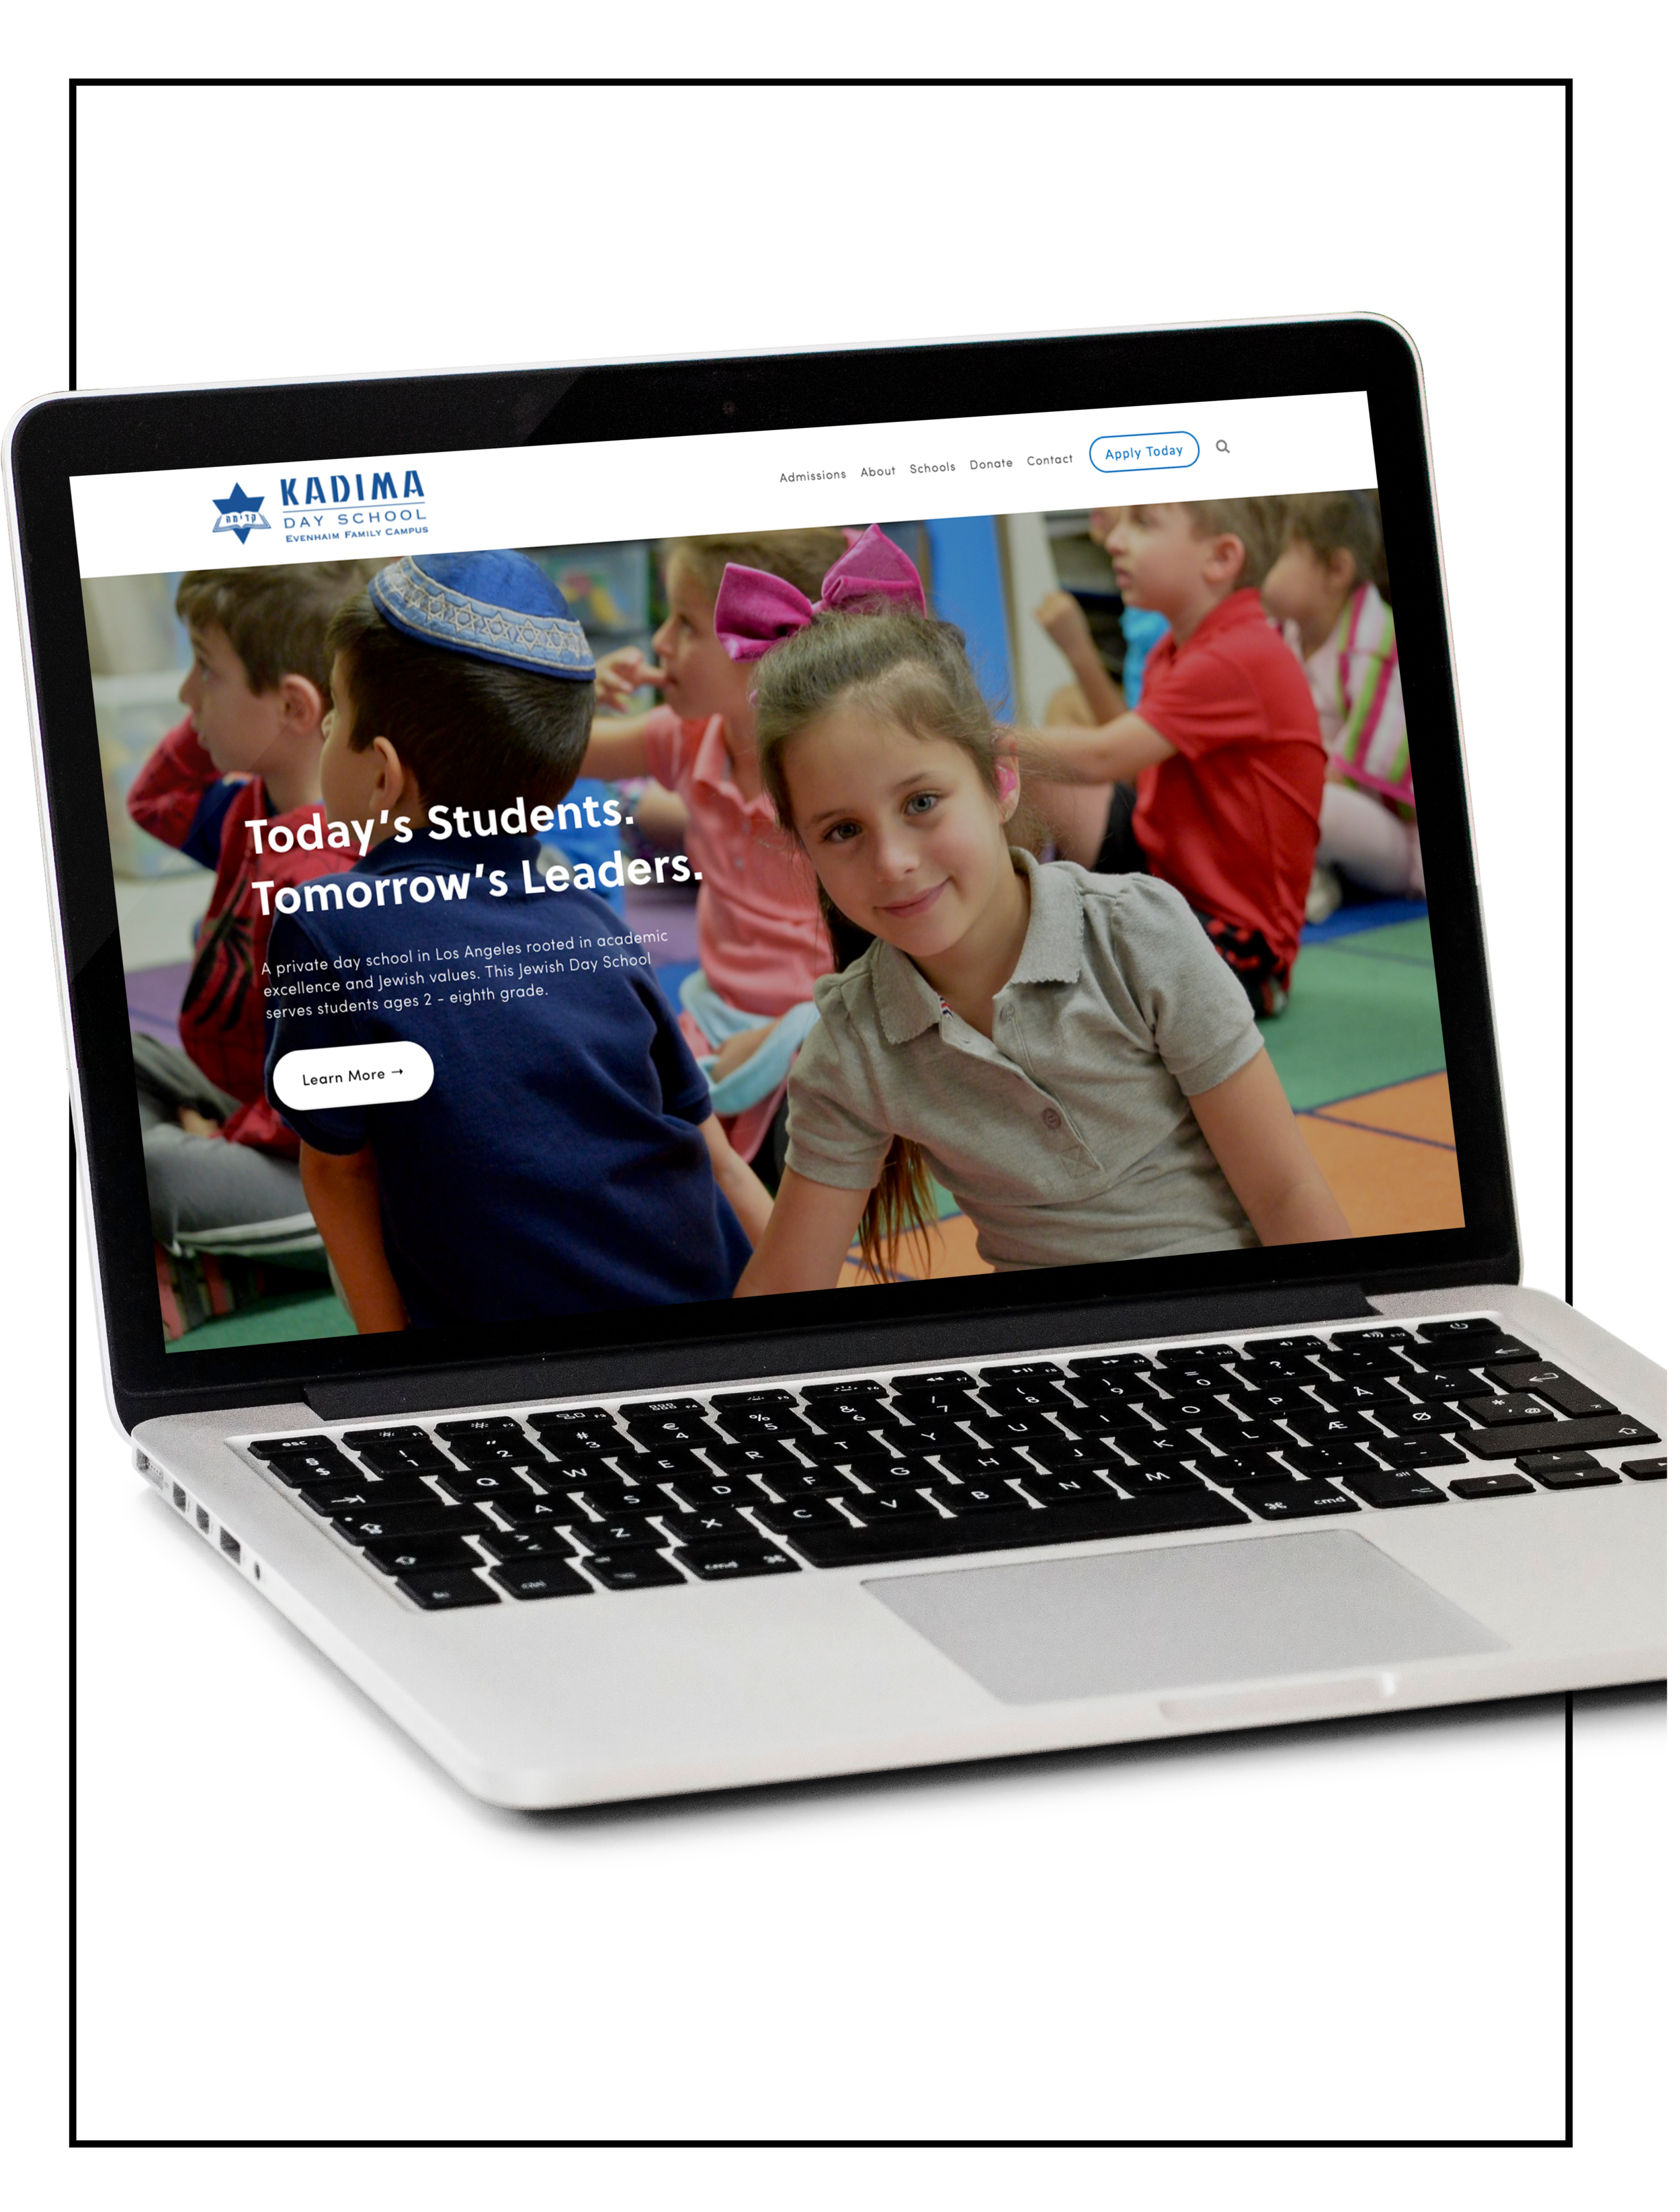 Showcasing an image of a laptop with a website build of Spacebar Agency - Kadima Day School